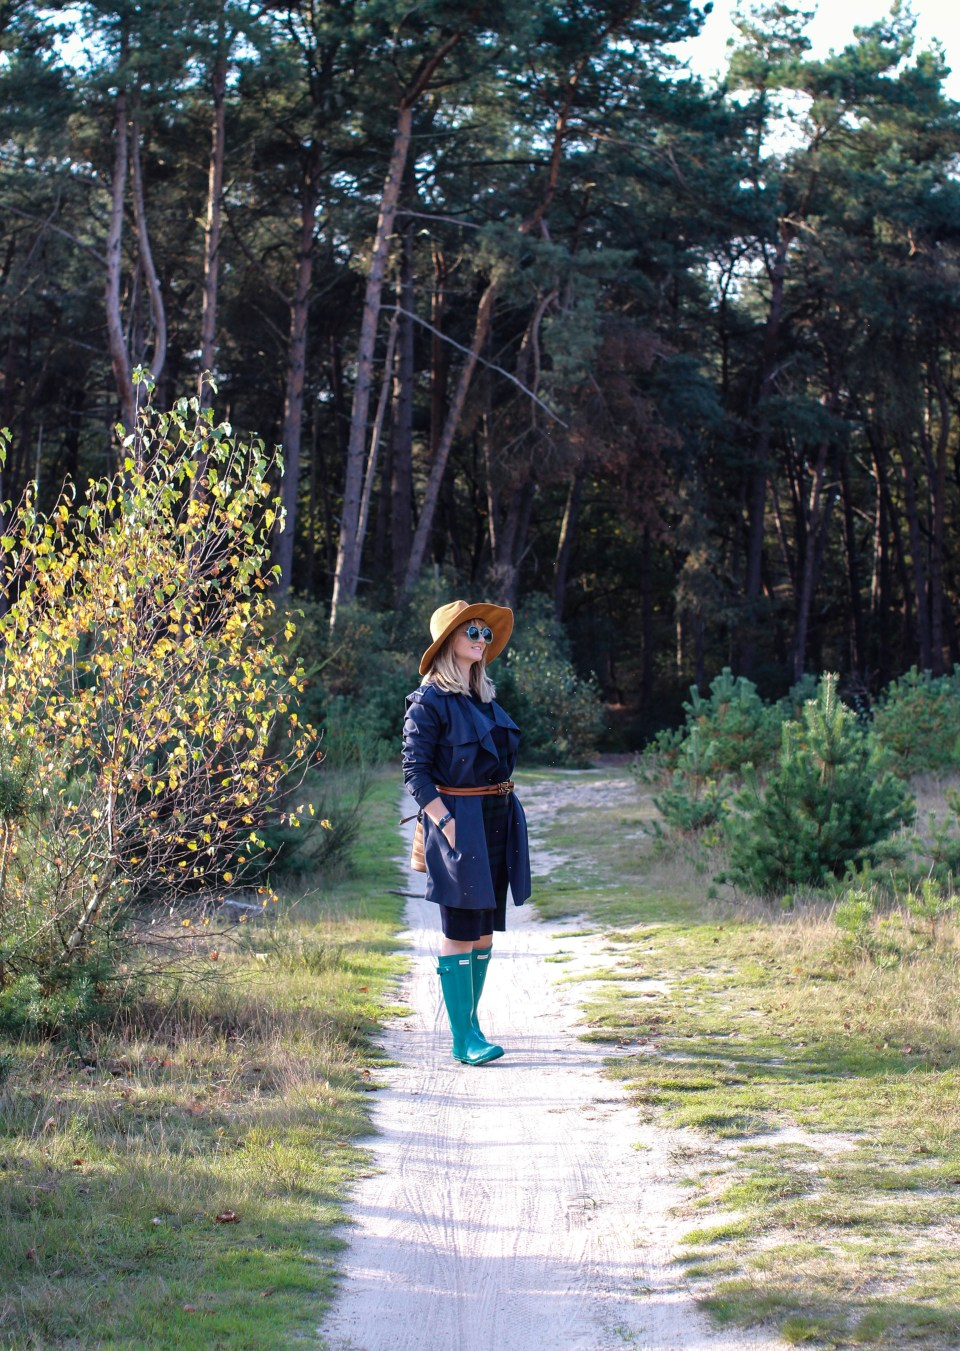 Utilitarian Item and Hunter Boots in the Loonse en Drunense Duinen